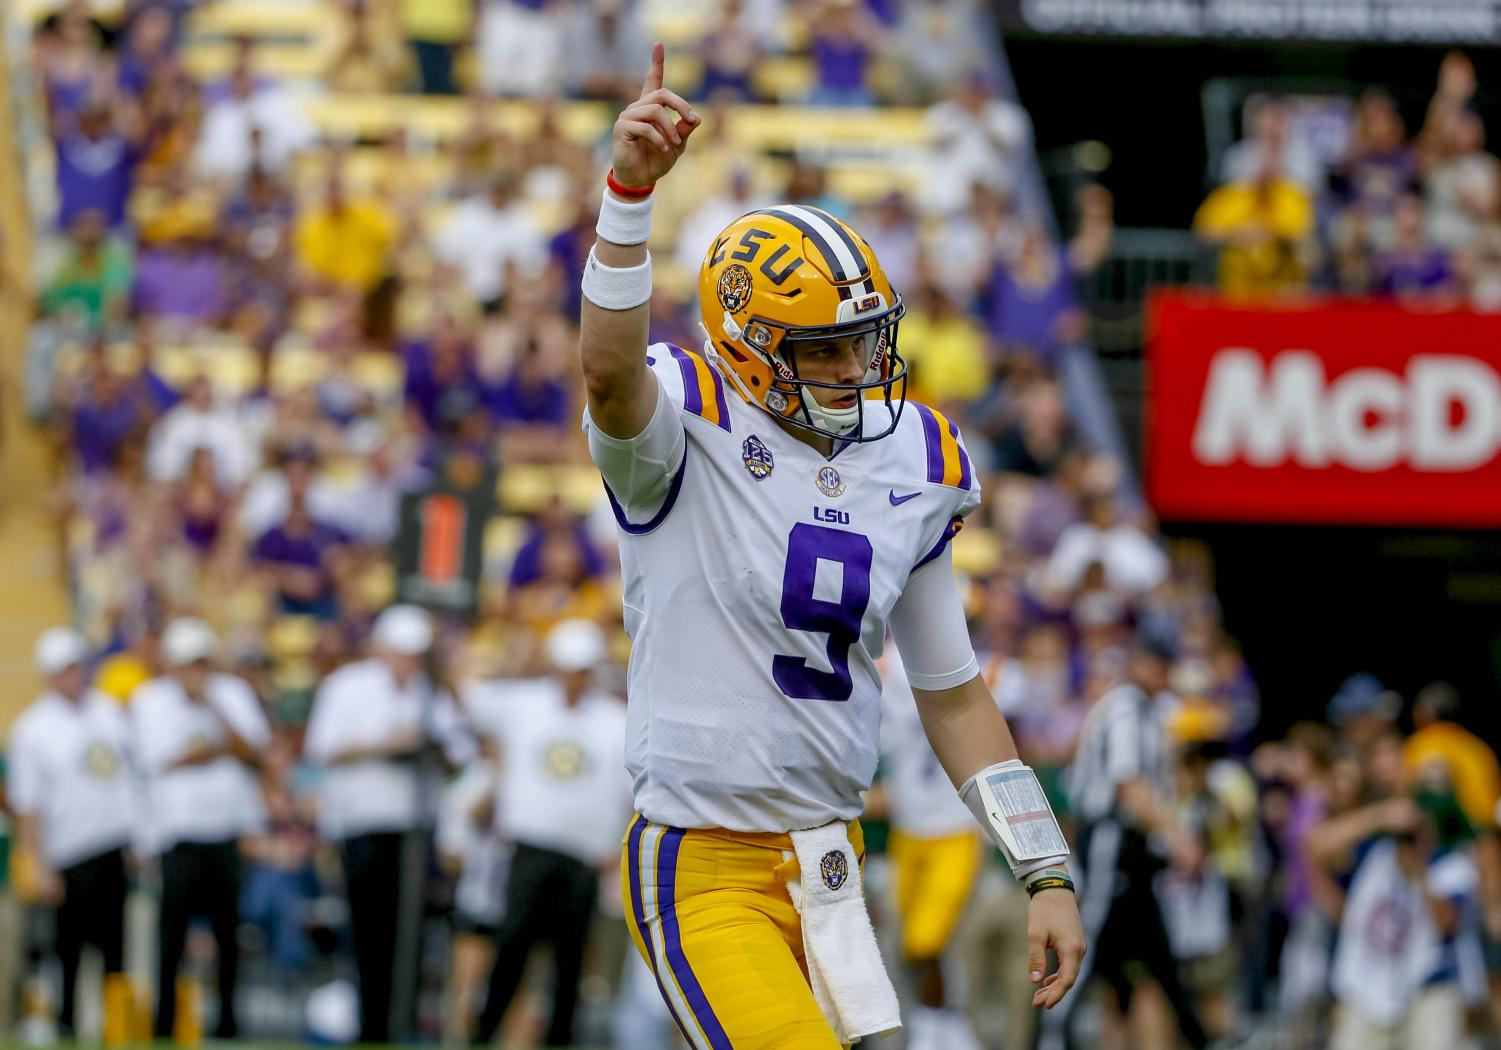 Joe Burrow celebrates a play for the LSU Tigers. Burrow has led them to the number one ranking and is top three in the country for every passing stat.